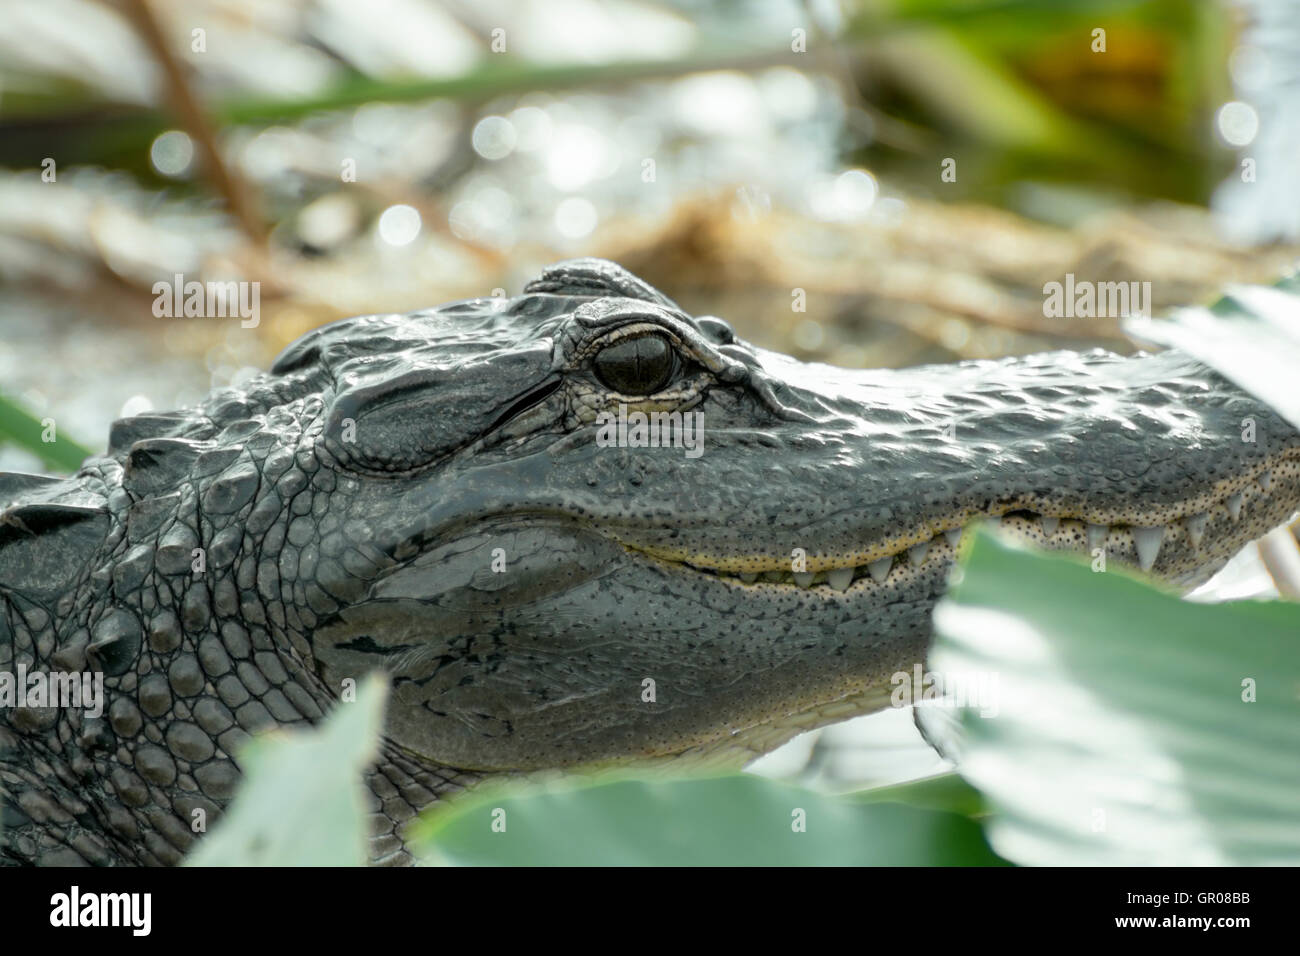 This is a shot of an Alligator n the marsh at the edge of Lake Tohipekaliga Kissimmee Florida on 23 December 2015 - Stock Image